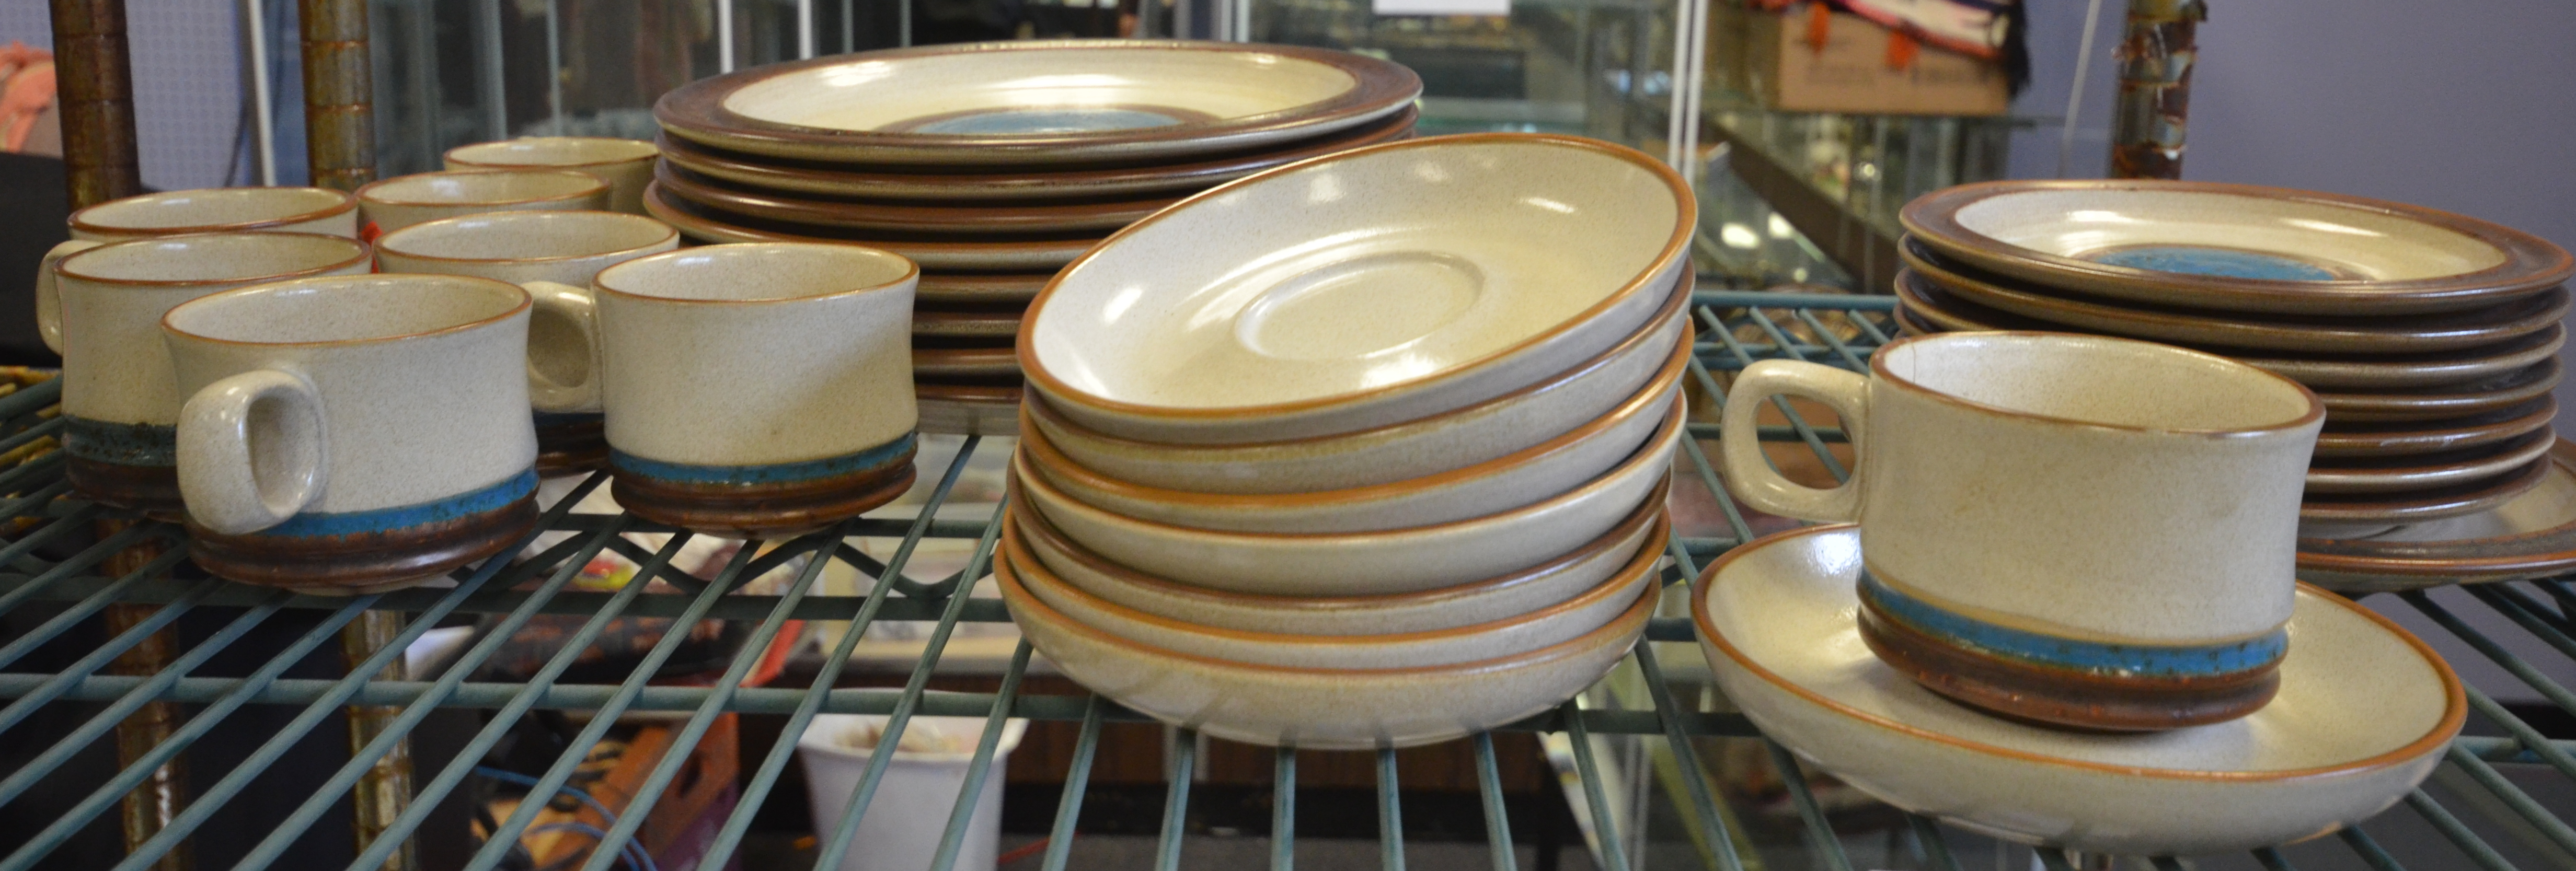 Dishes_008